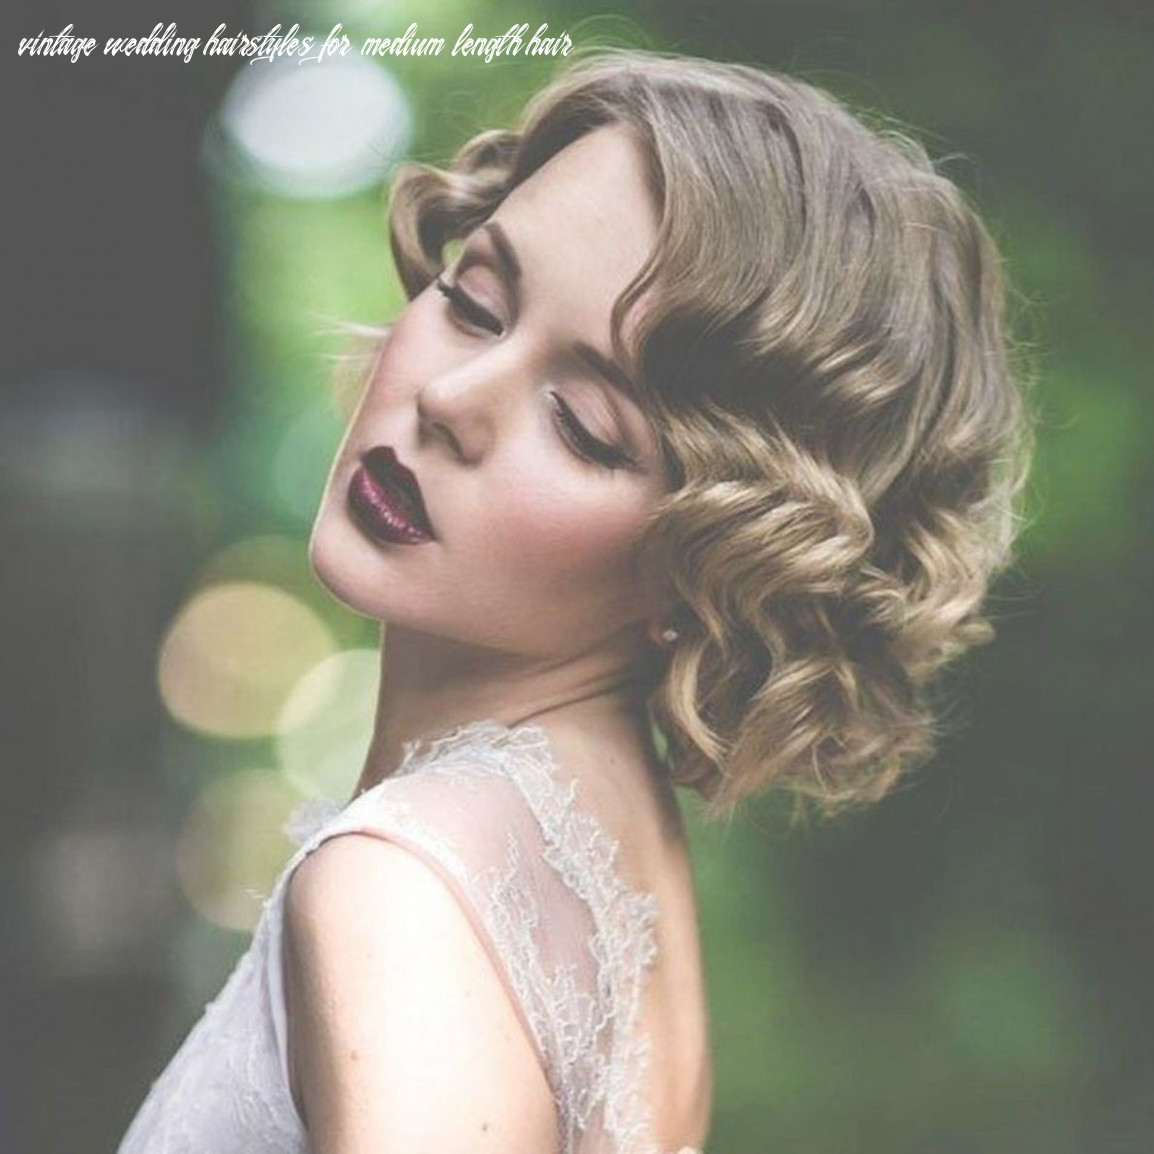 Shabby chic vintage wedding hairstyles ideas this year9 (with